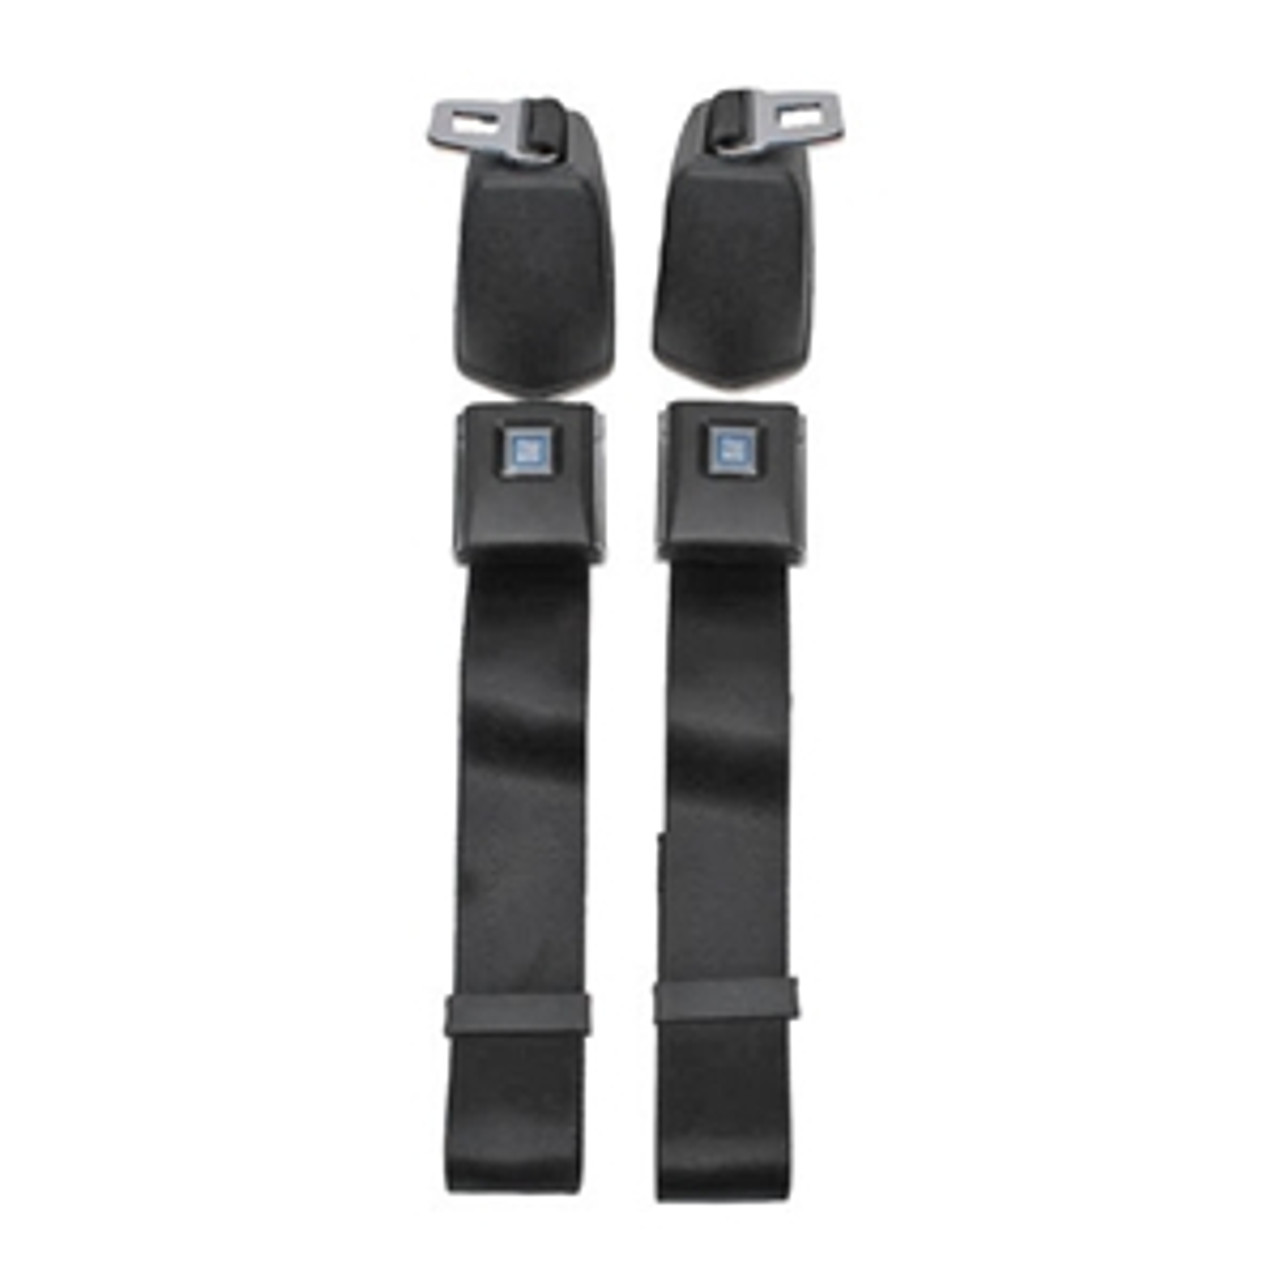 1966-72 Chevelle, El Camino GM Style Front Retractable Lap Seat Belts w/ Plastic Buckle Cover, Pair